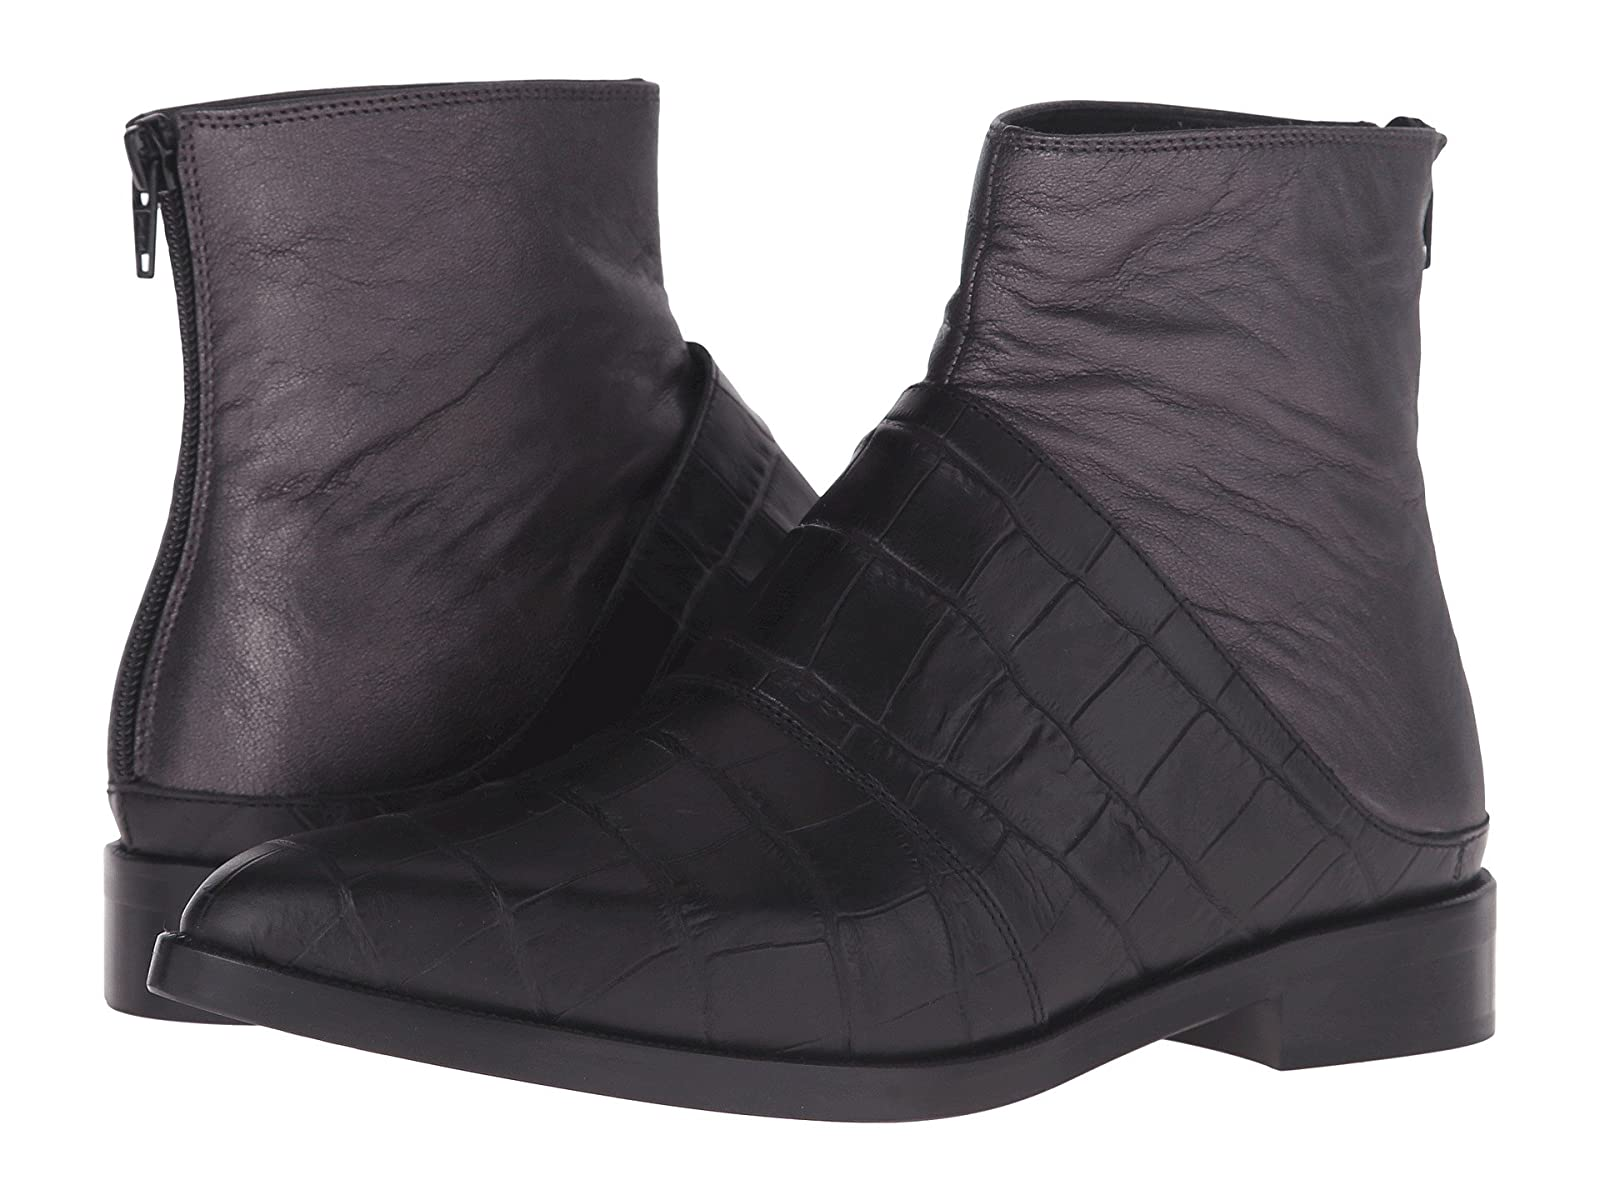 MM6 Maison Margiela Layered Chelsea BootCheap and distinctive eye-catching shoes